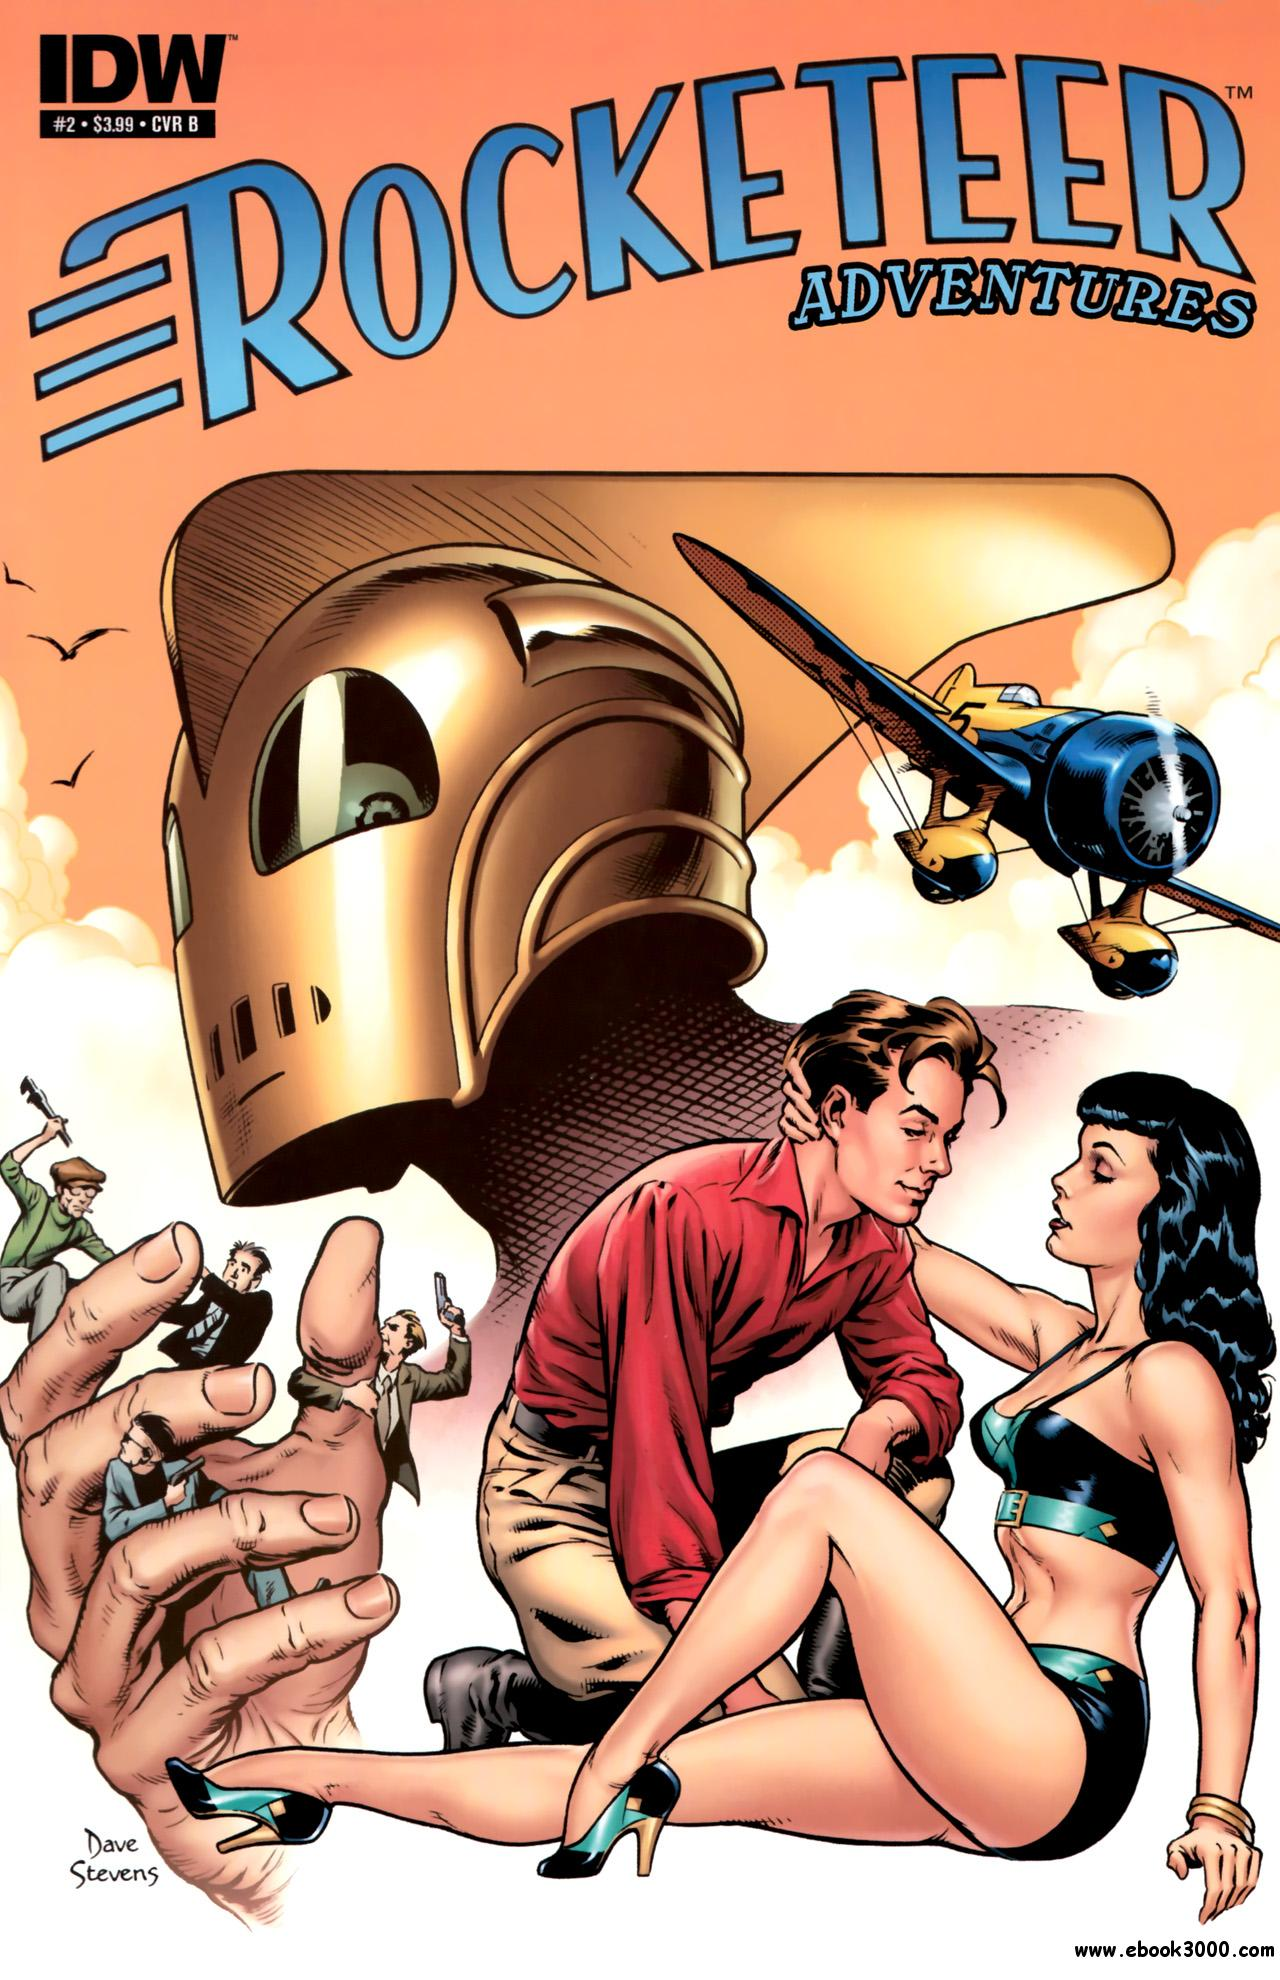 Rocketeer Adventures #2 (2011) free download